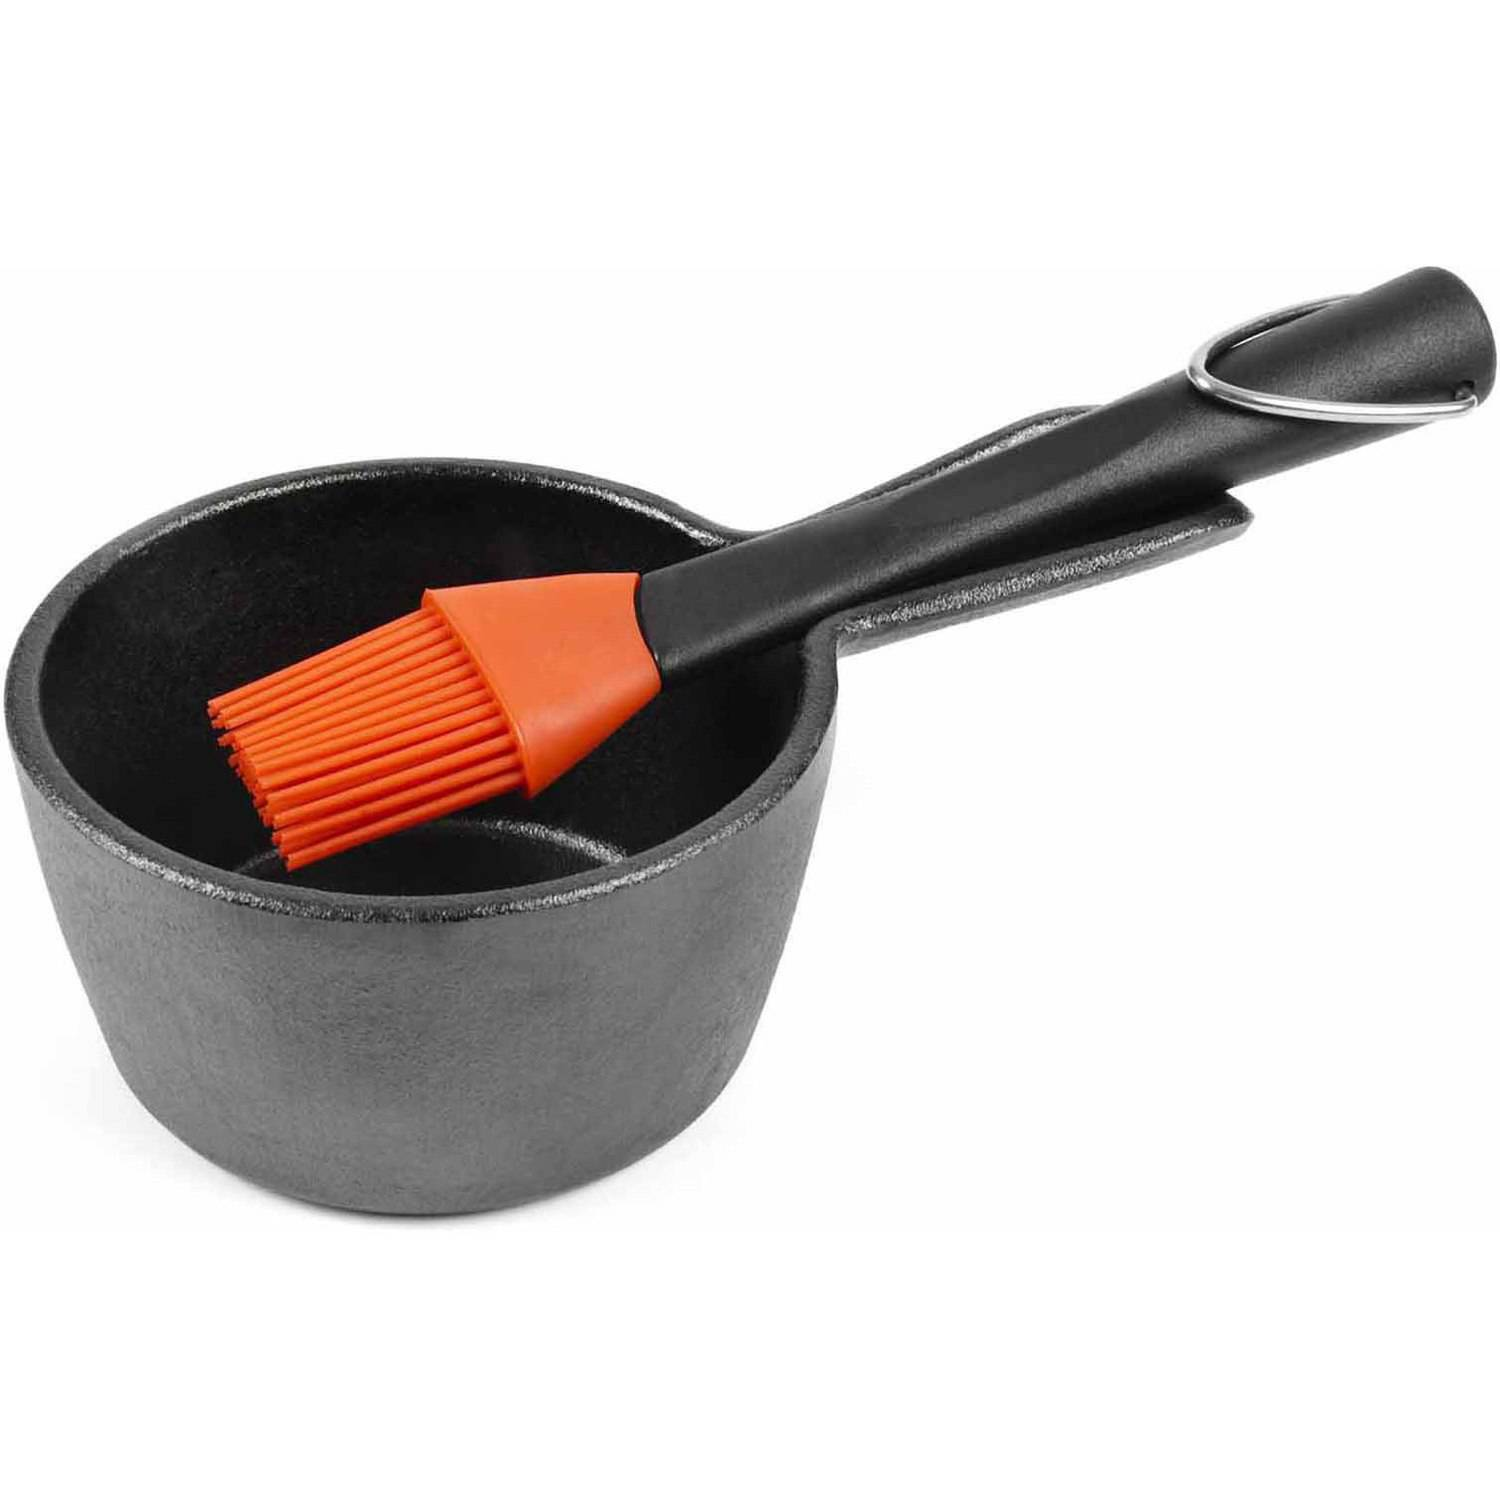 The Charcoal Companion Cast Iron Sauce Pan with Silicone Head Basting Brush, CC5099